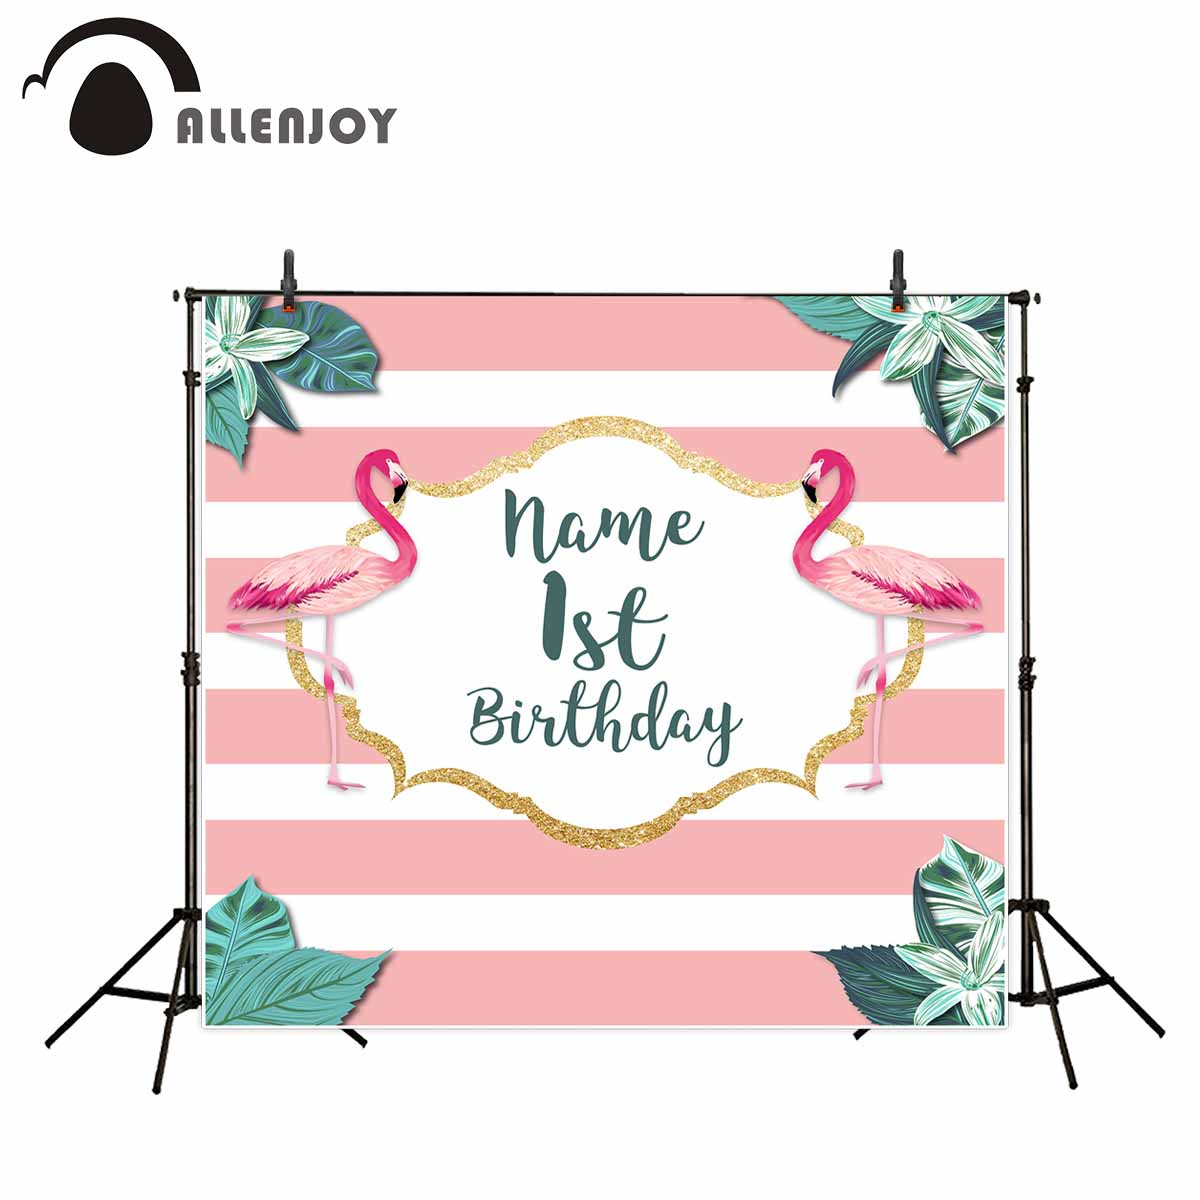 Allenjoy photography background pink flamingo and leaves theme Birthday party backdrop photography studio camera fotografica allenjoy photography background pink